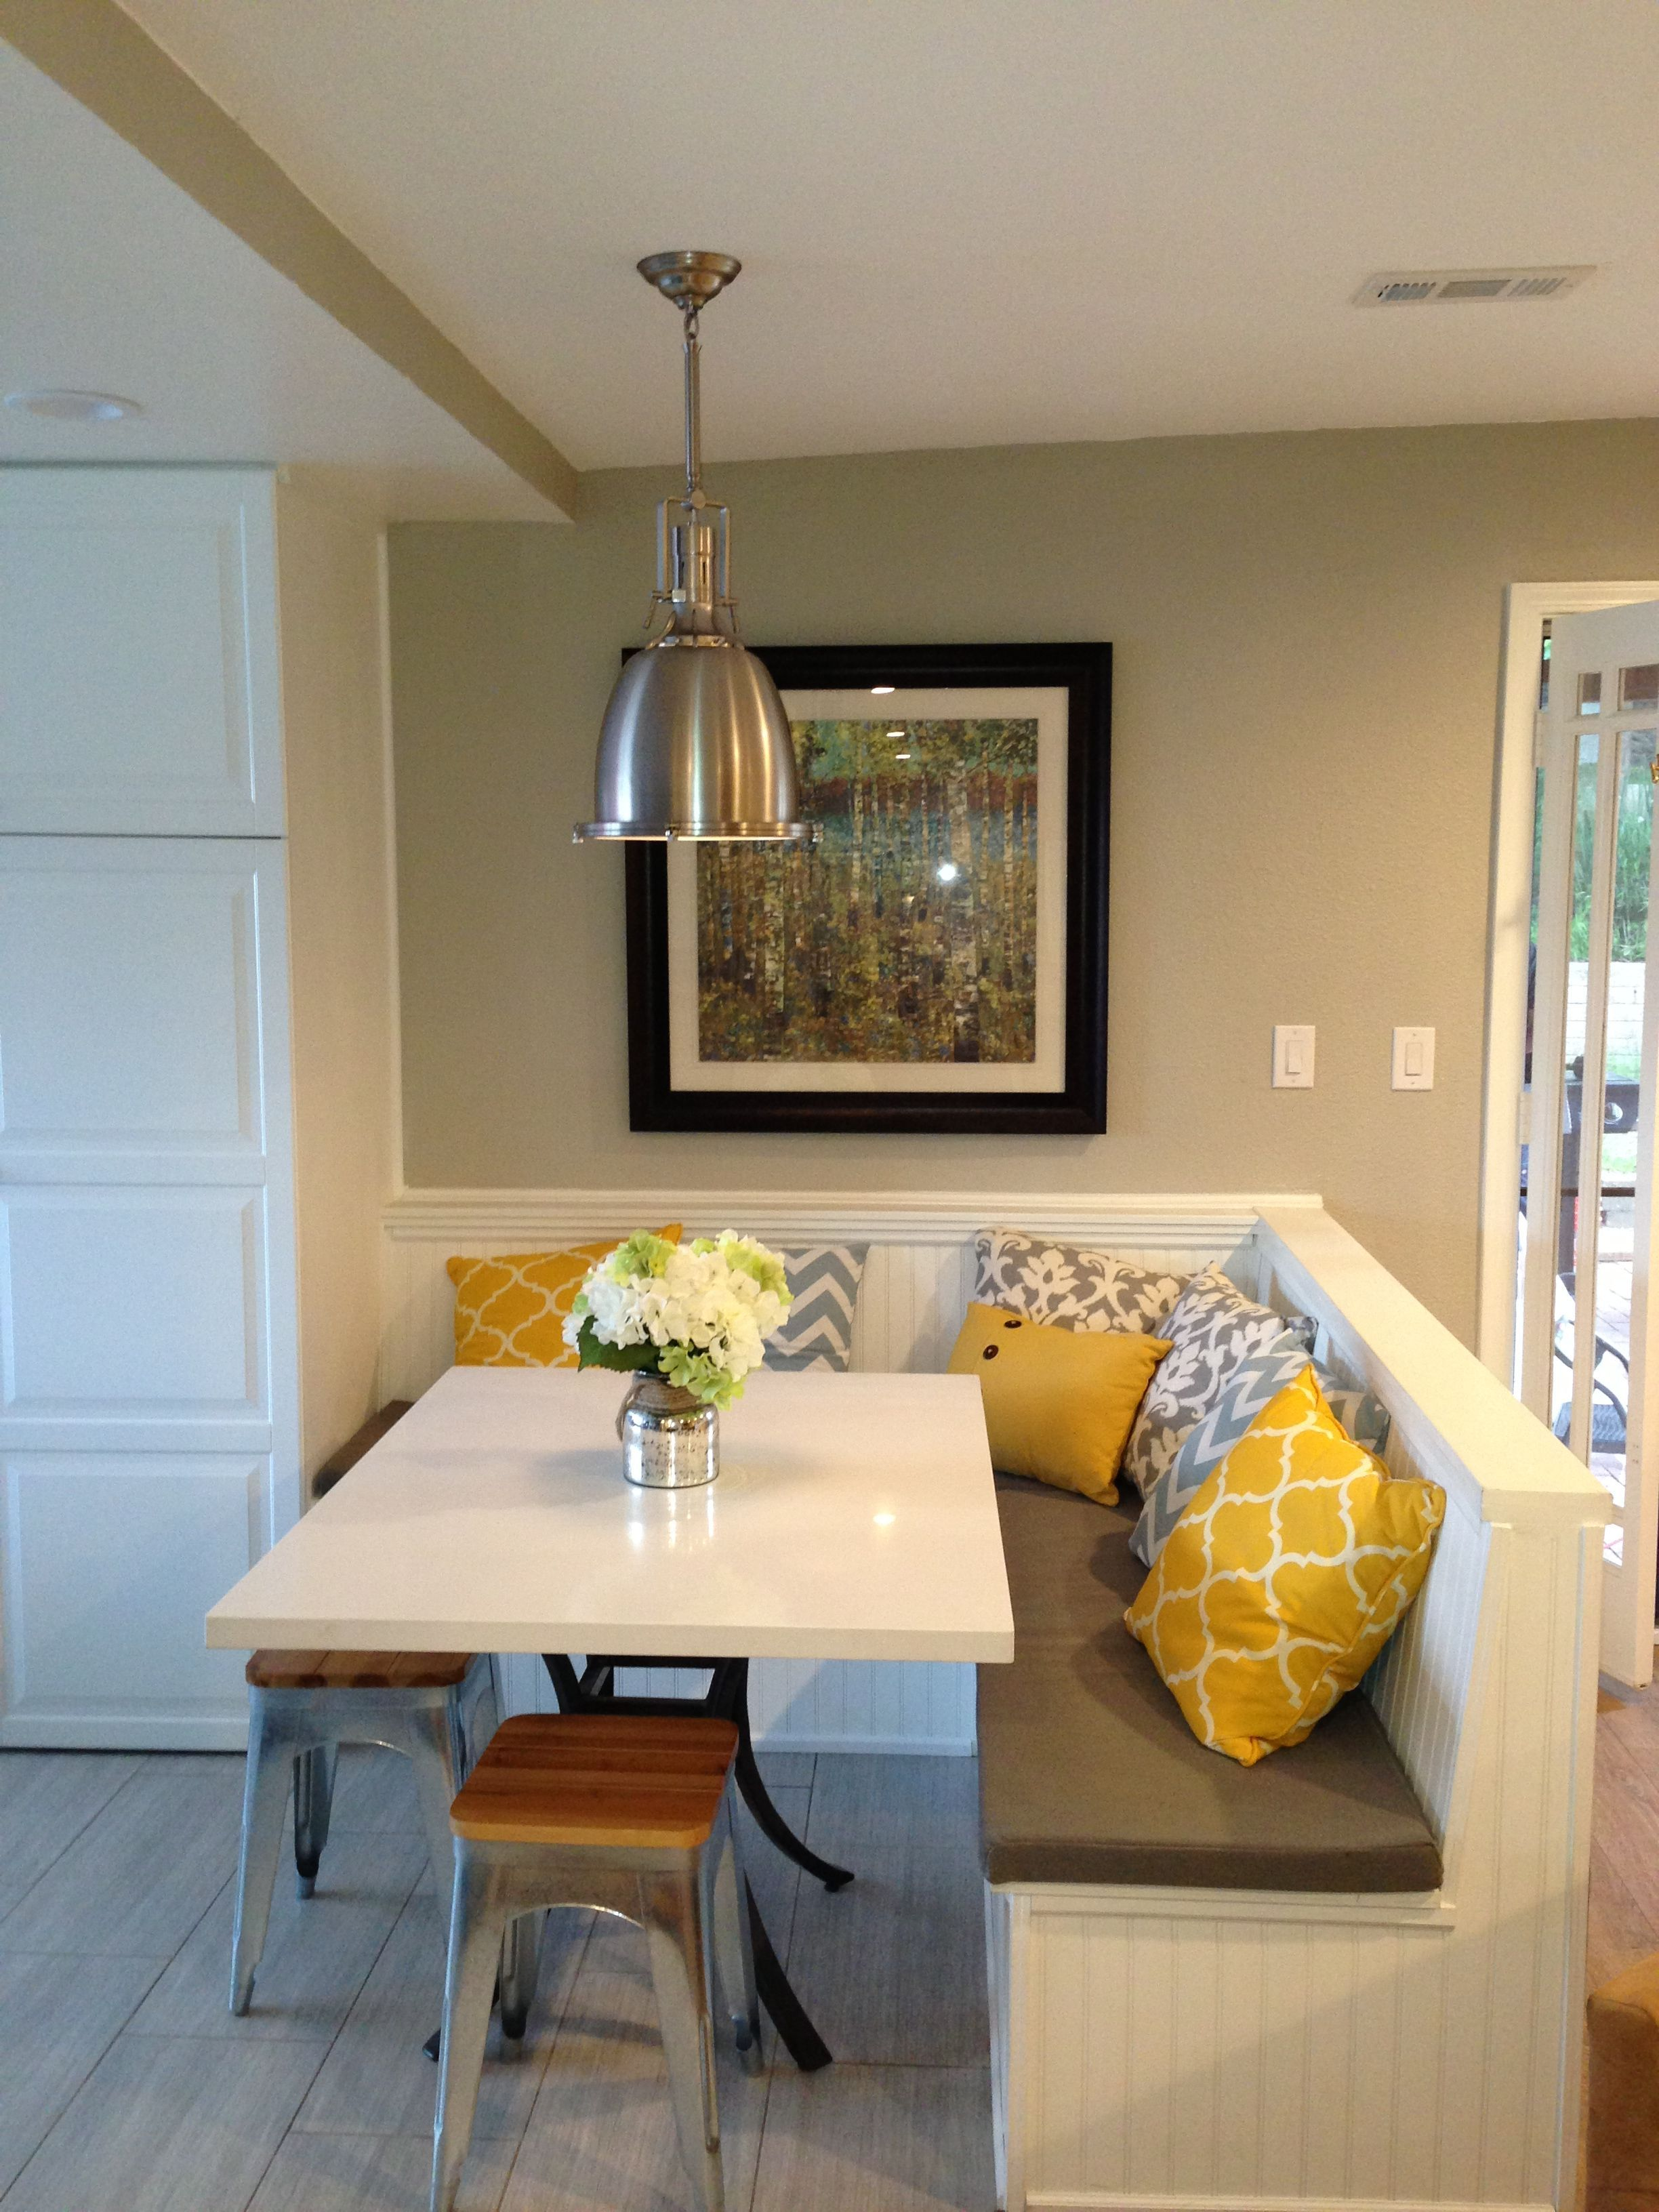 Bench Seating Kitchen Table Kitchen Decor Home In 2020 Kitchen Table Bench Kitchen Seating Dining Nook